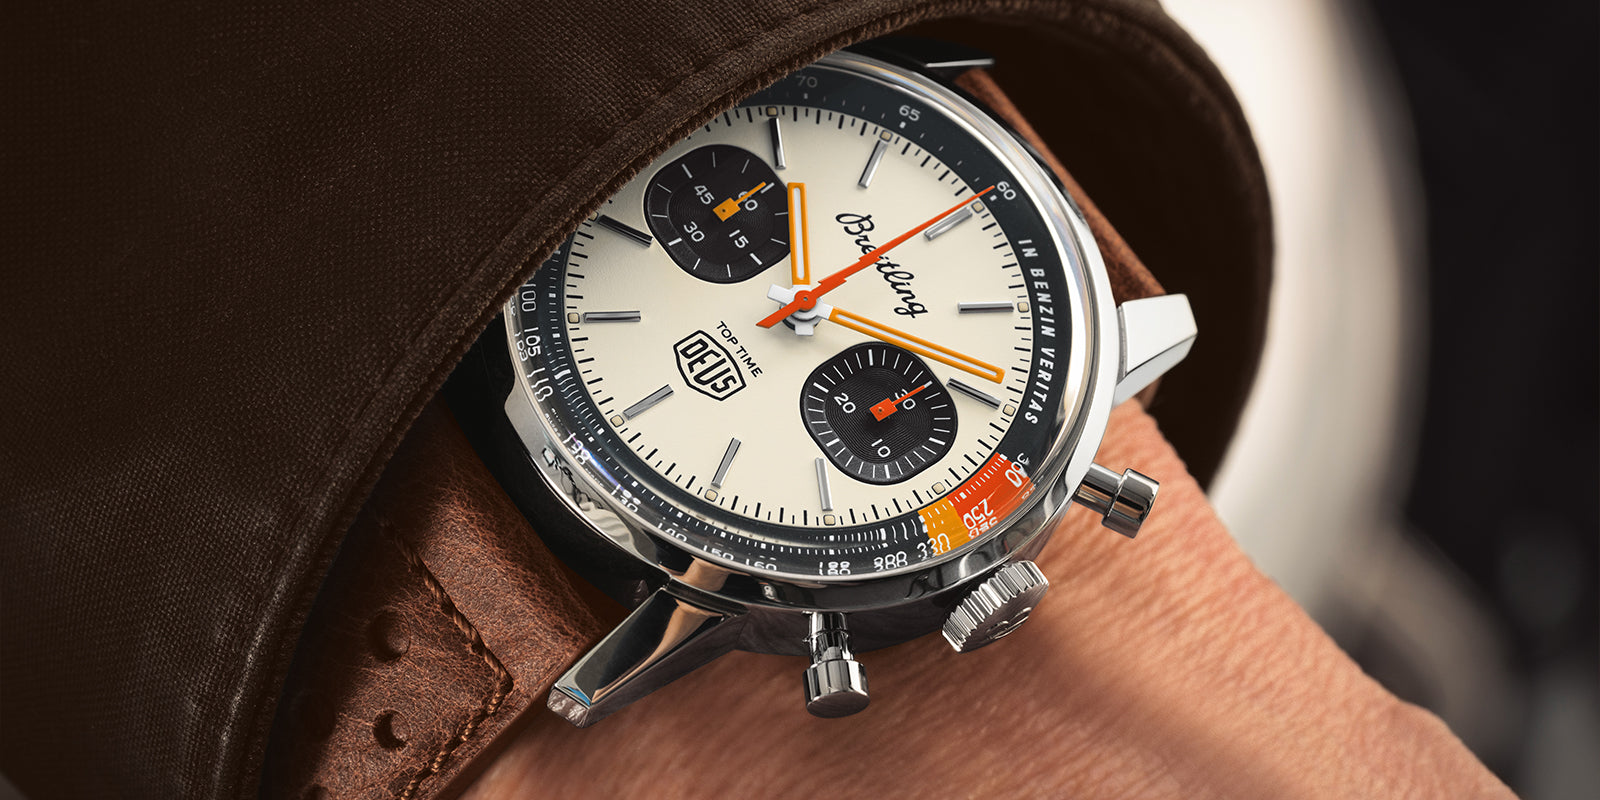 BREITLING'S TOP TIME DEUS LIMITED EDITION